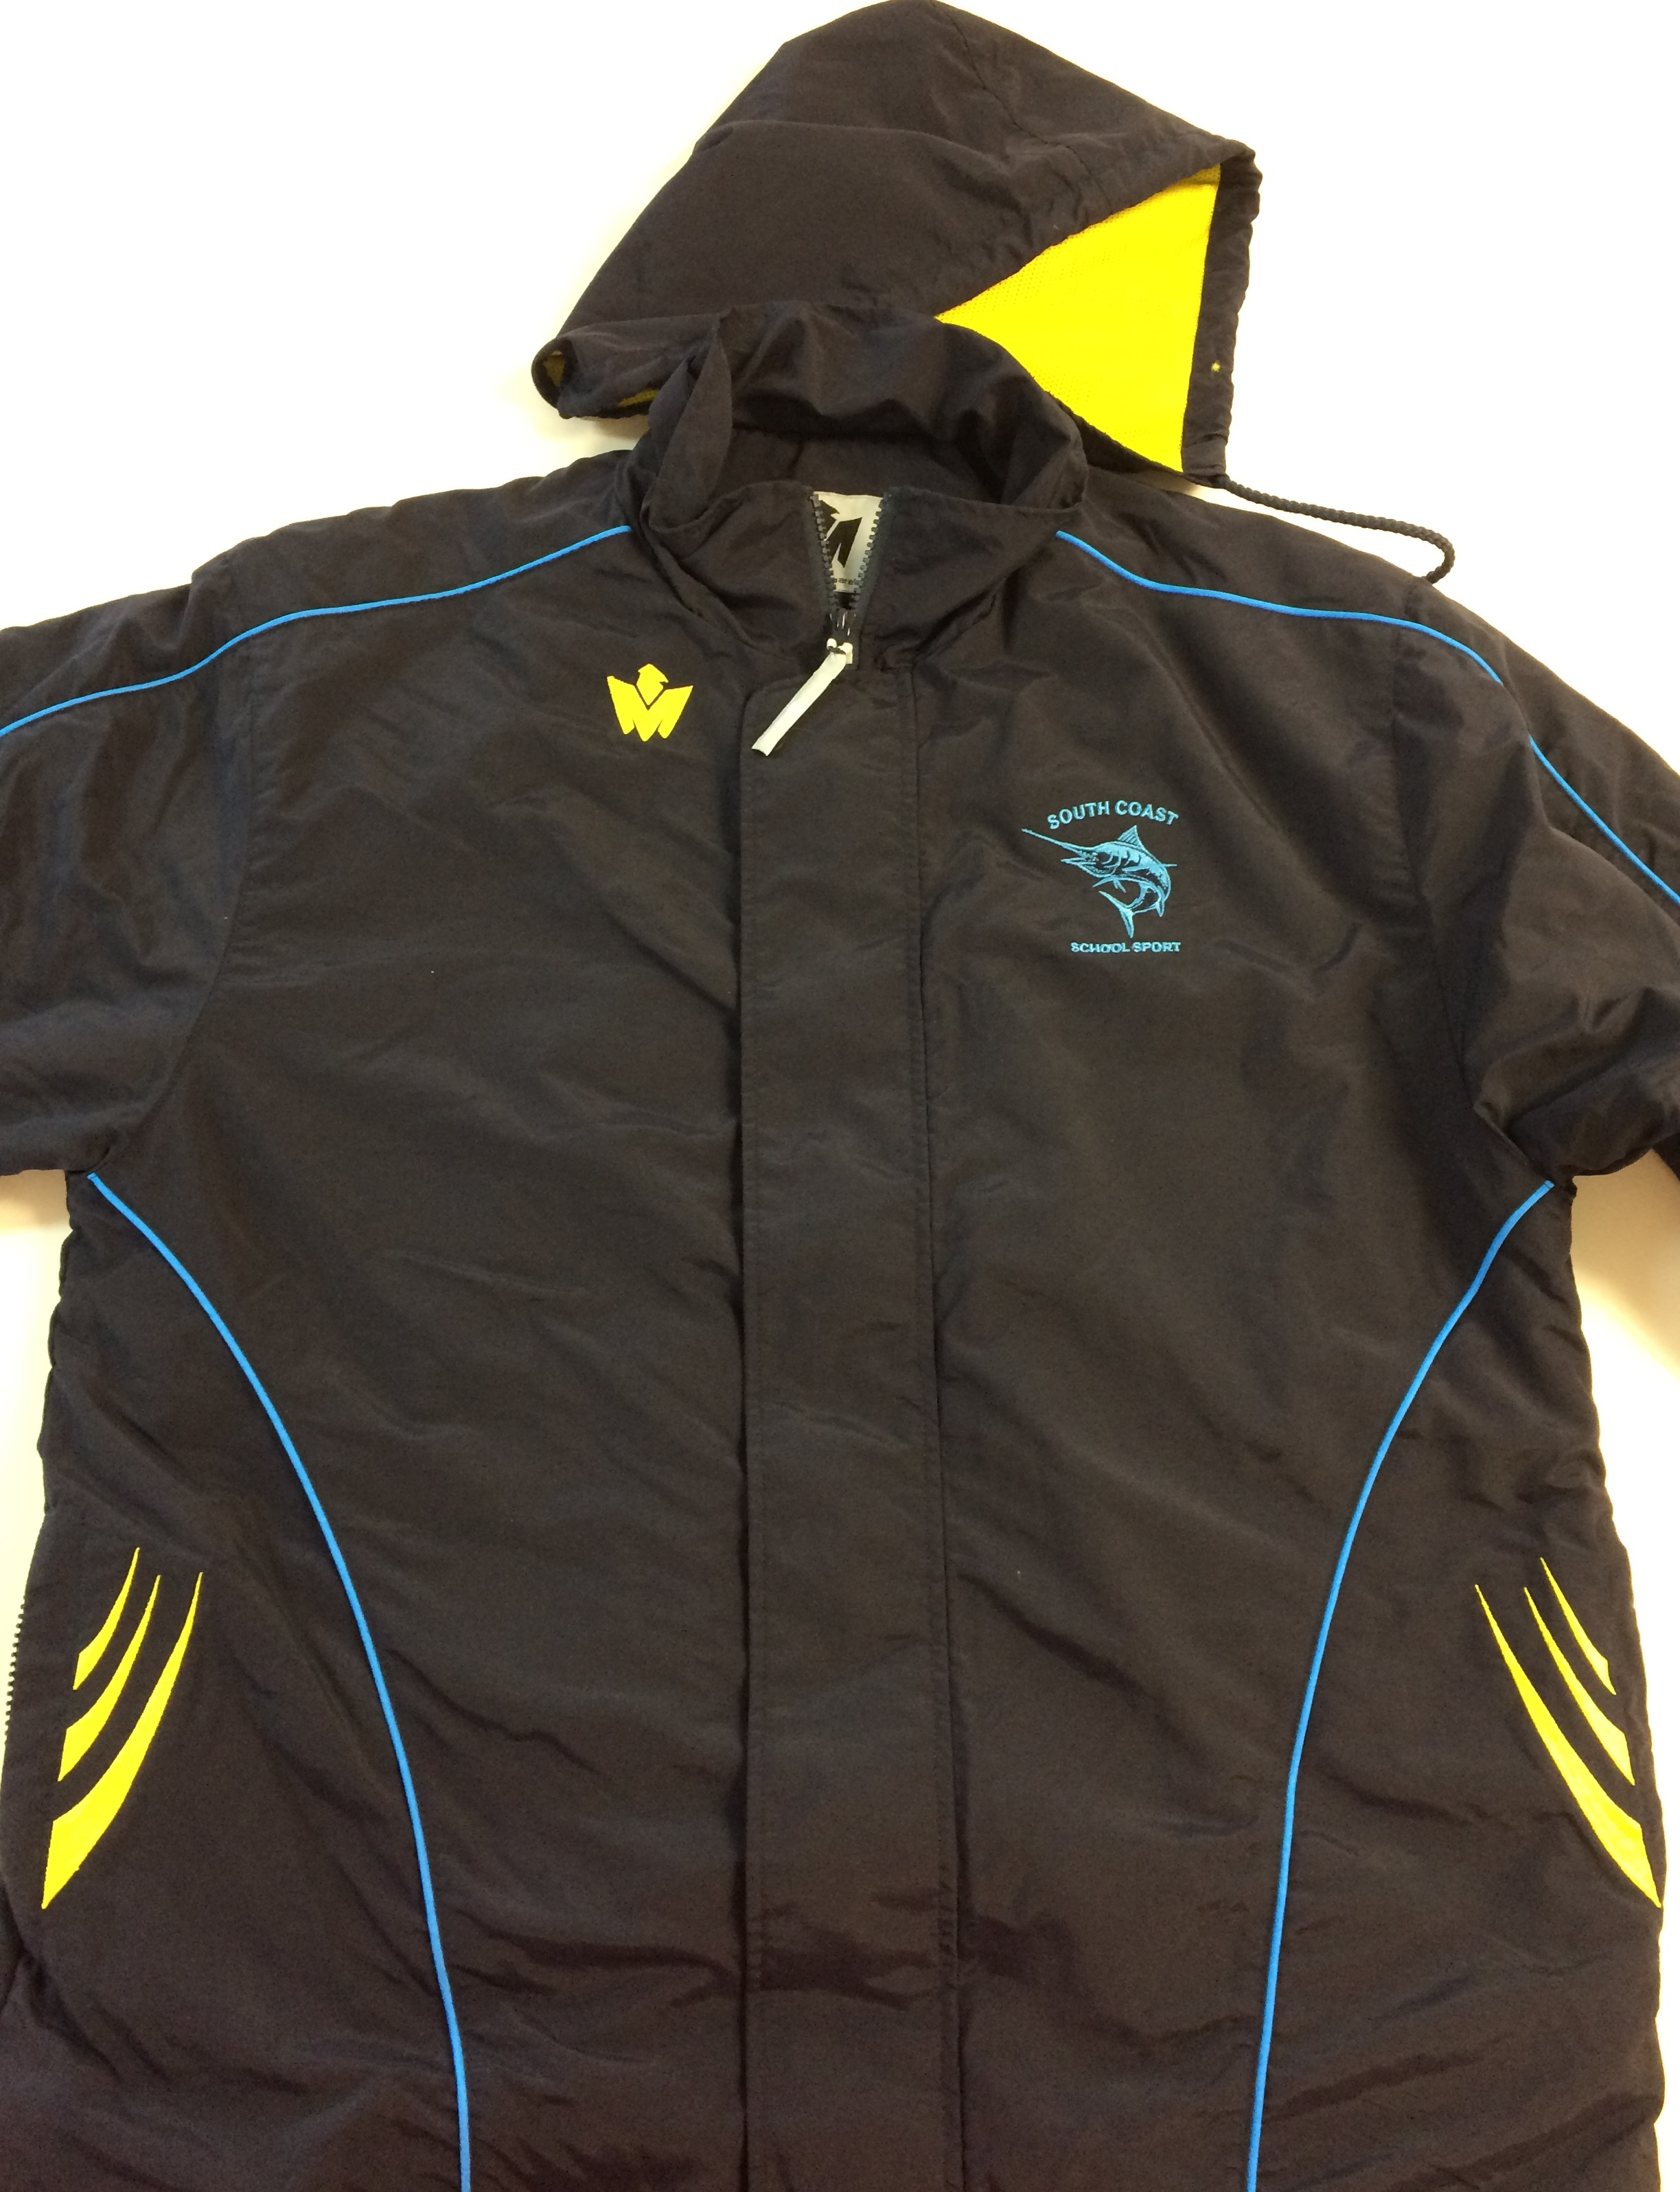 South Coast all weather tracksuit jacket front